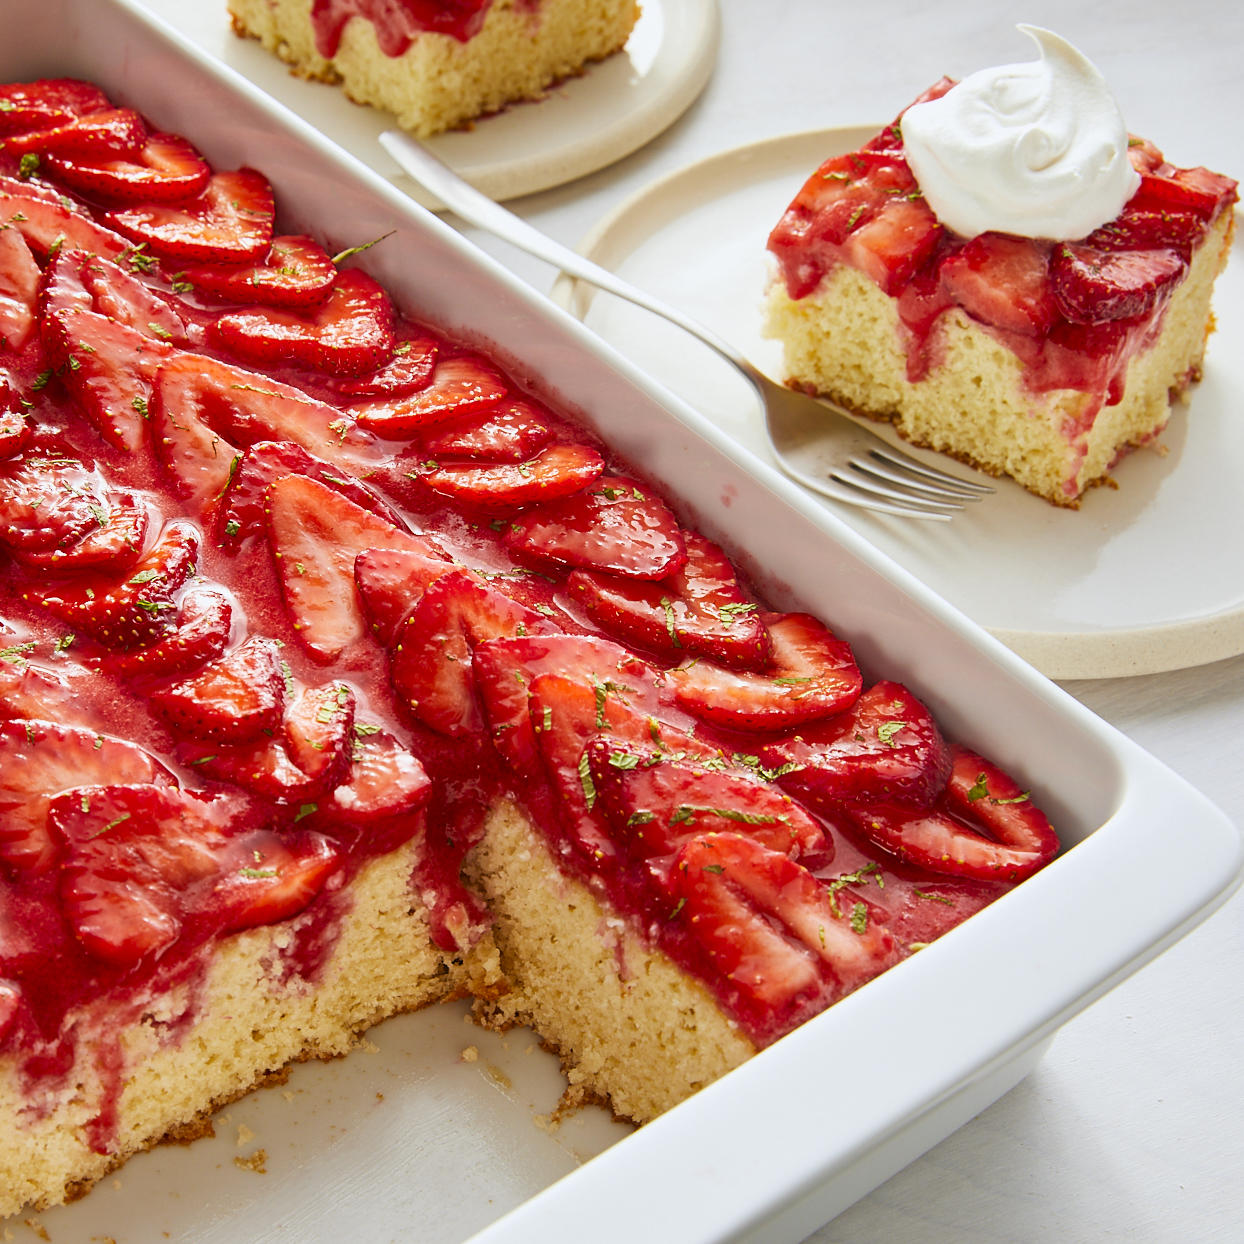 What makes this poke cake so special? After this lightened-up cake is baked and cooled, it's poked with holes (hence the name!) that are filled with fresh pureed strawberries thickened with gelatin to prevent the cake from getting soggy. The end result? Sweet strawberry flavor inside and out! Source: EatingWell.com, January 2020